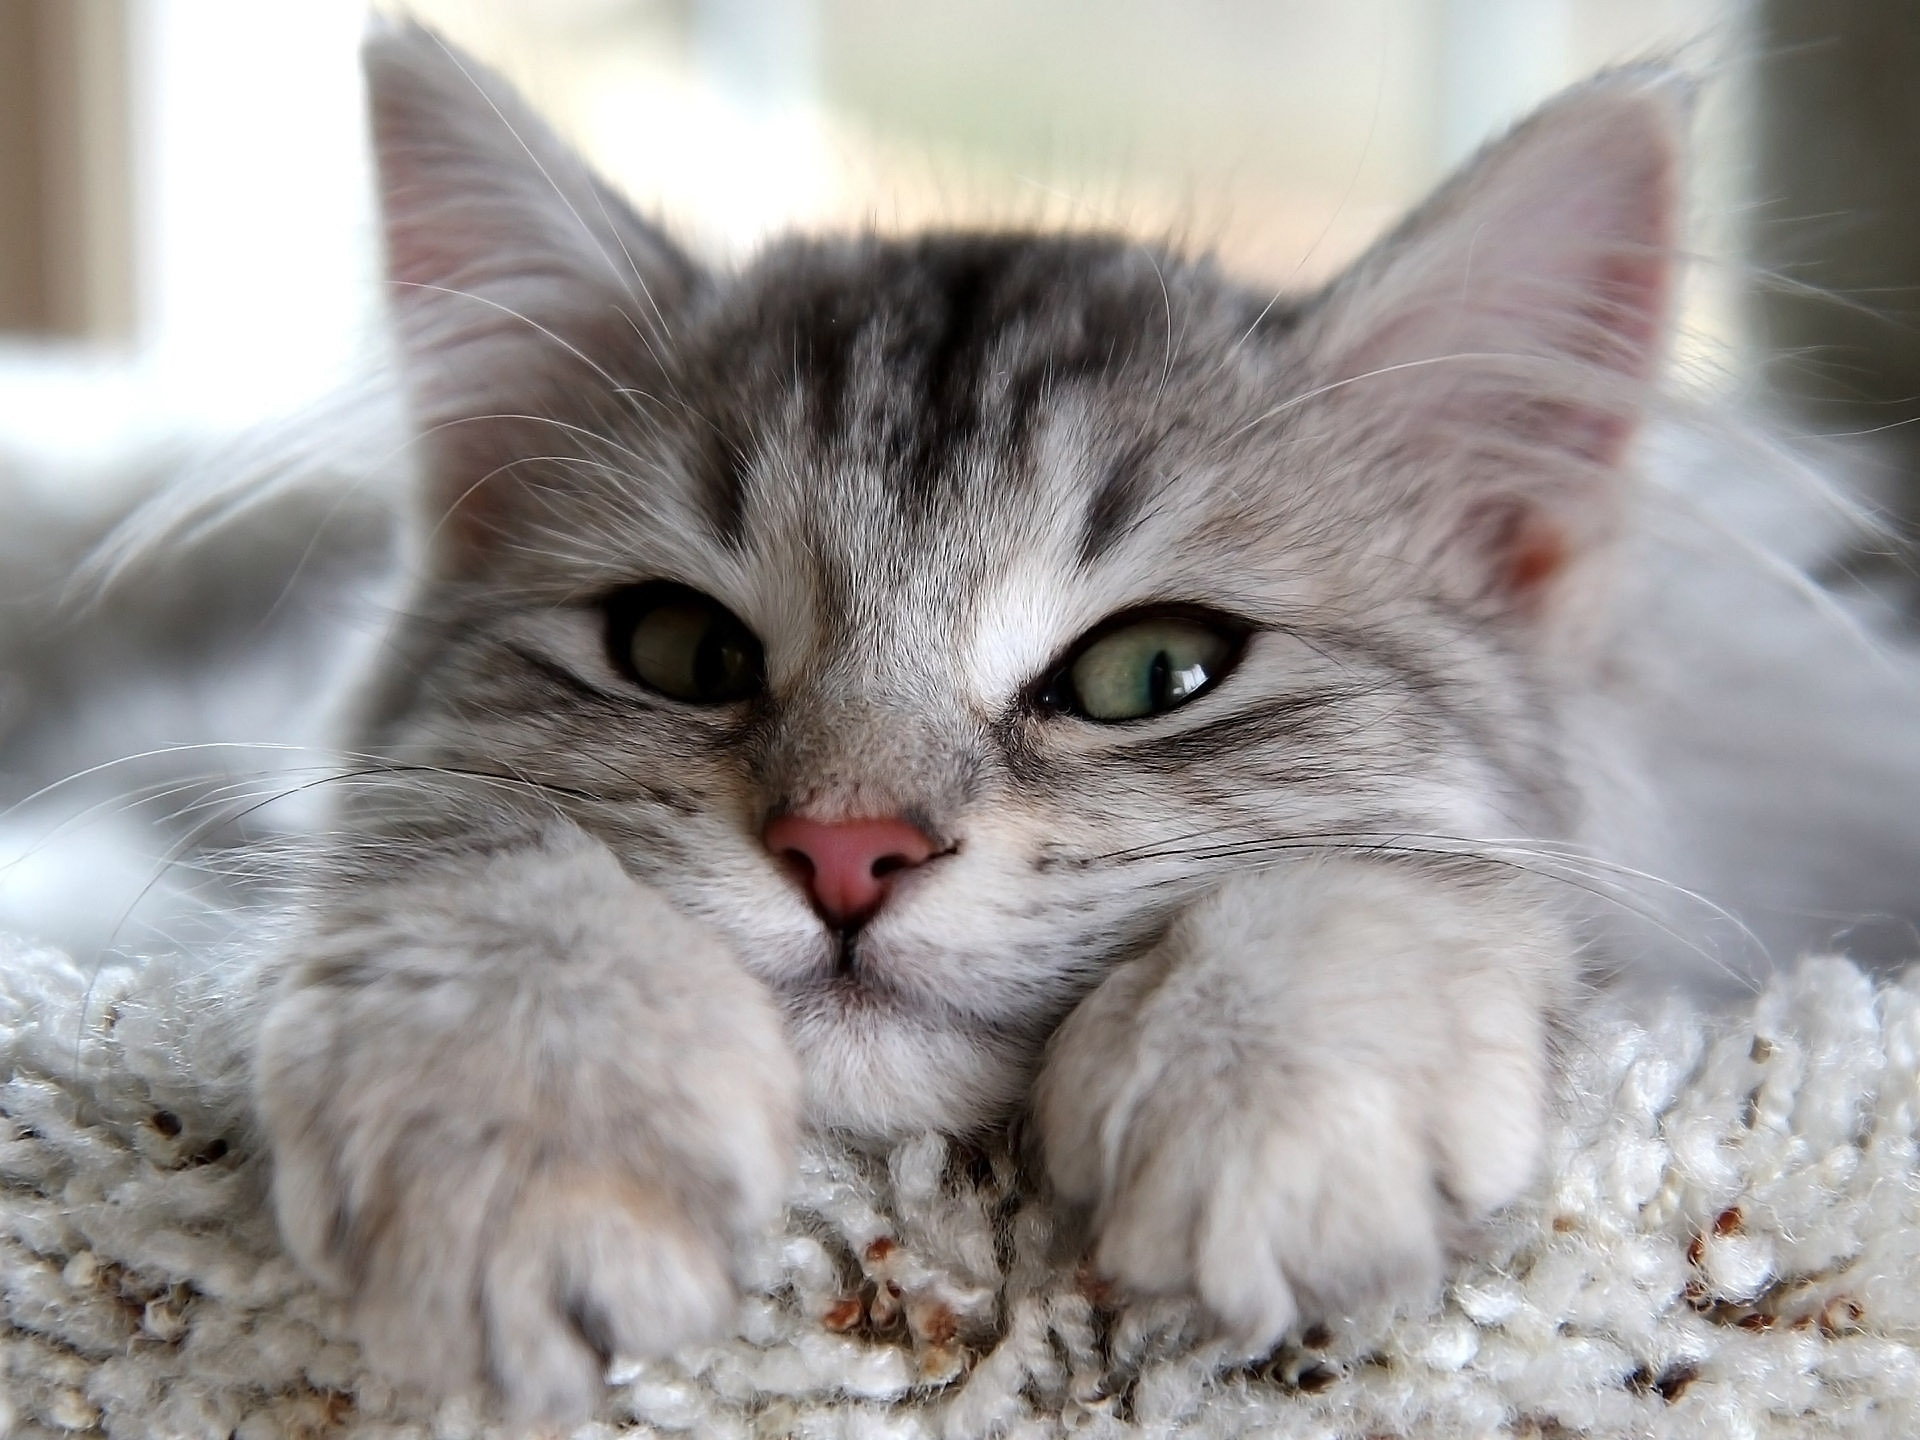 134744 Screensavers and Wallpapers Nice for phone. Download Animals, Fluffy, Kitty, Kitten, To Lie Down, Lie, Muzzle, Sight, Opinion, Nice, Sweetheart, Paws pictures for free